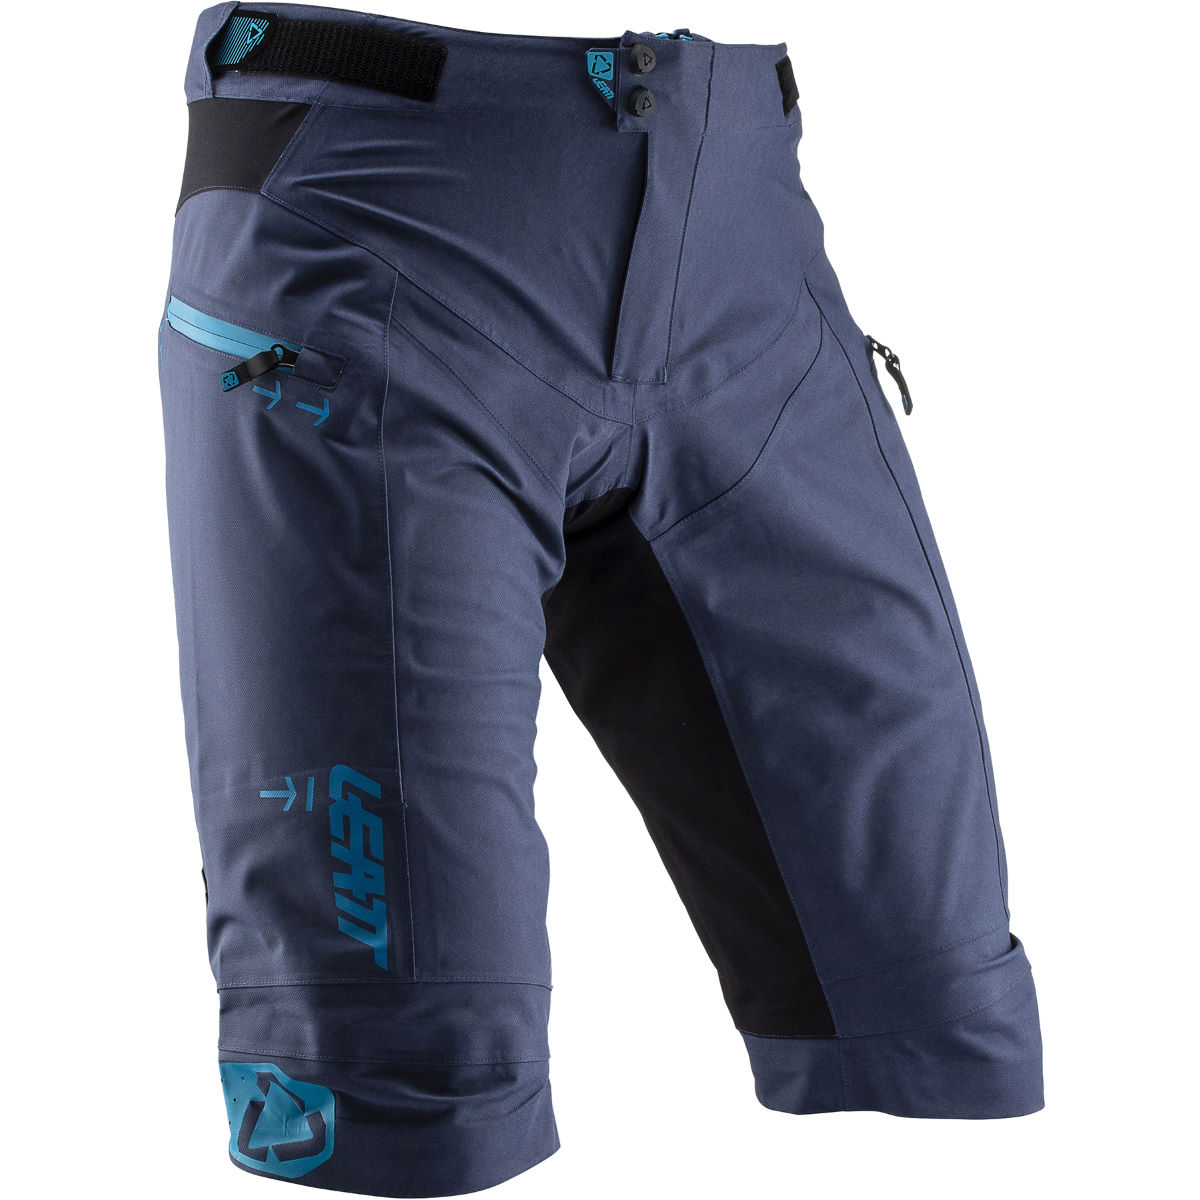 Leatt Leatt DBX 5.0 Shorts   Baggy Shorts